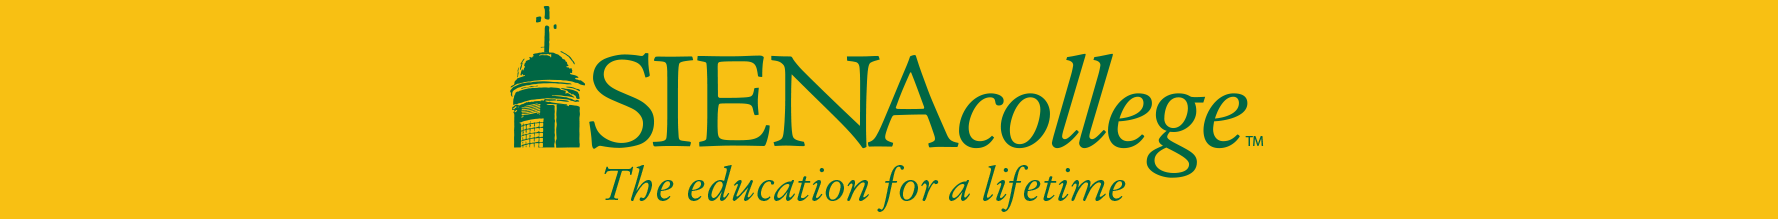 Siena College Footer